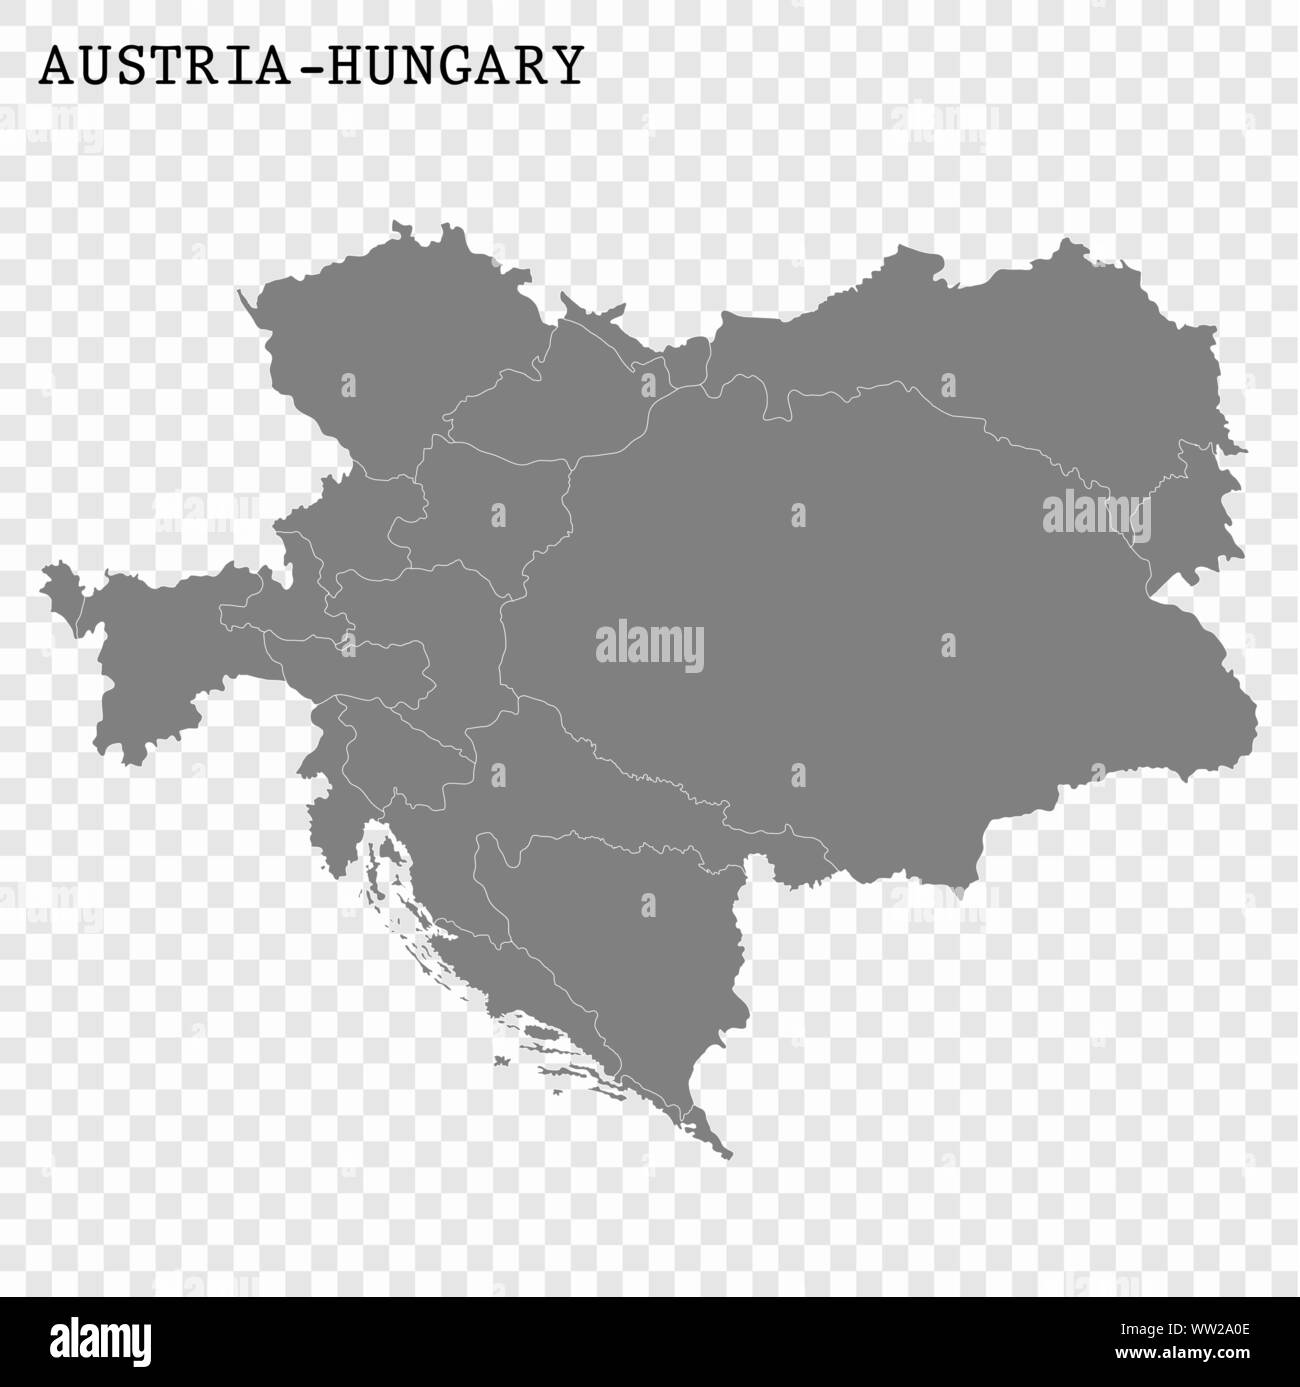 High Quality Map Of Austria Hungary With Borders Of The Regions Stock Vector Image Art Alamy